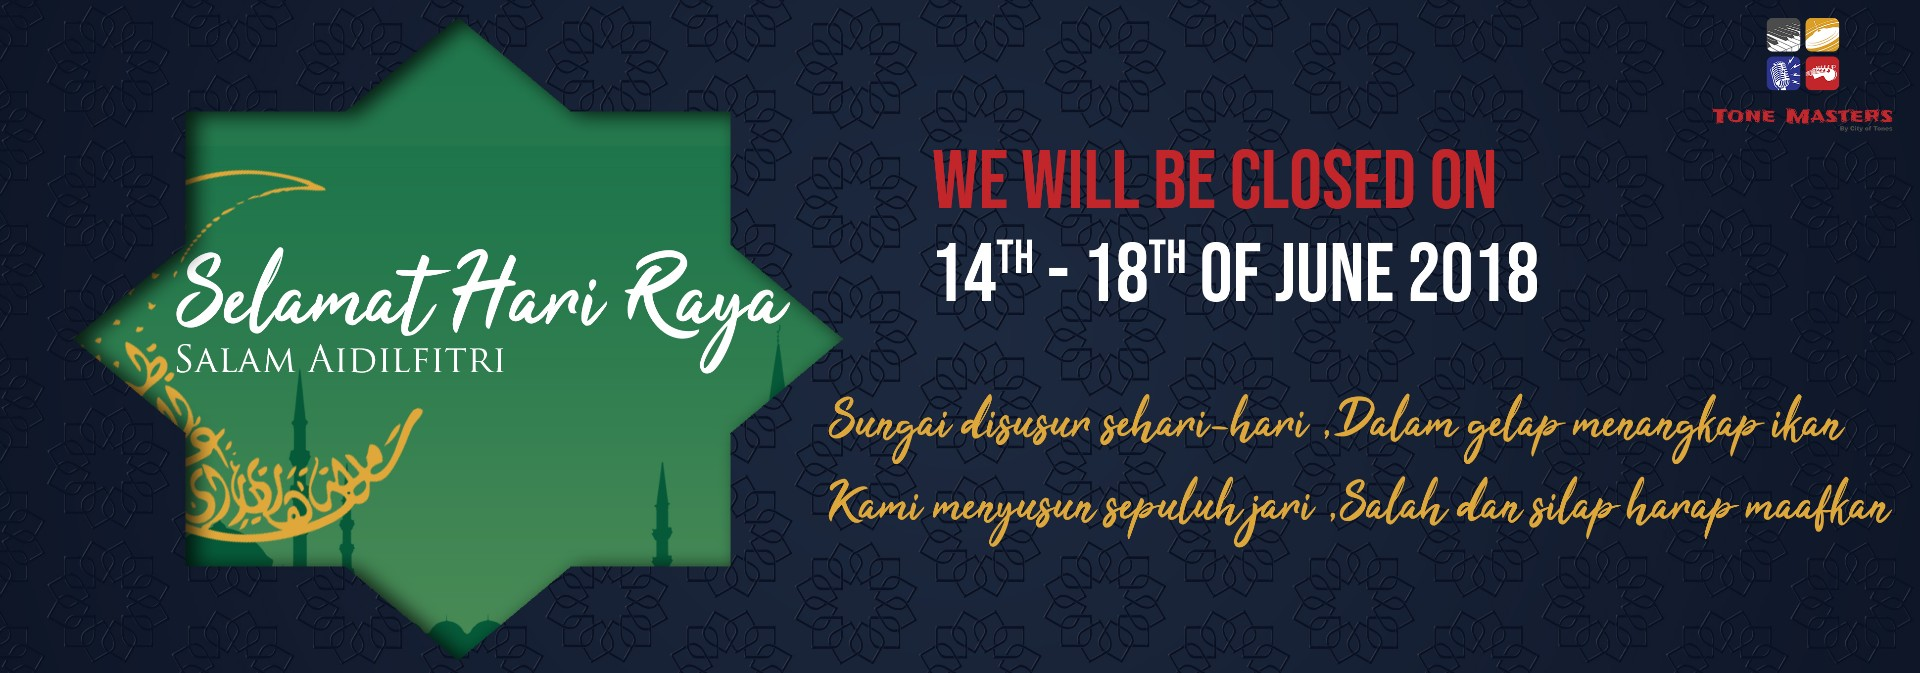 Notice of Early Closure During Ramadan